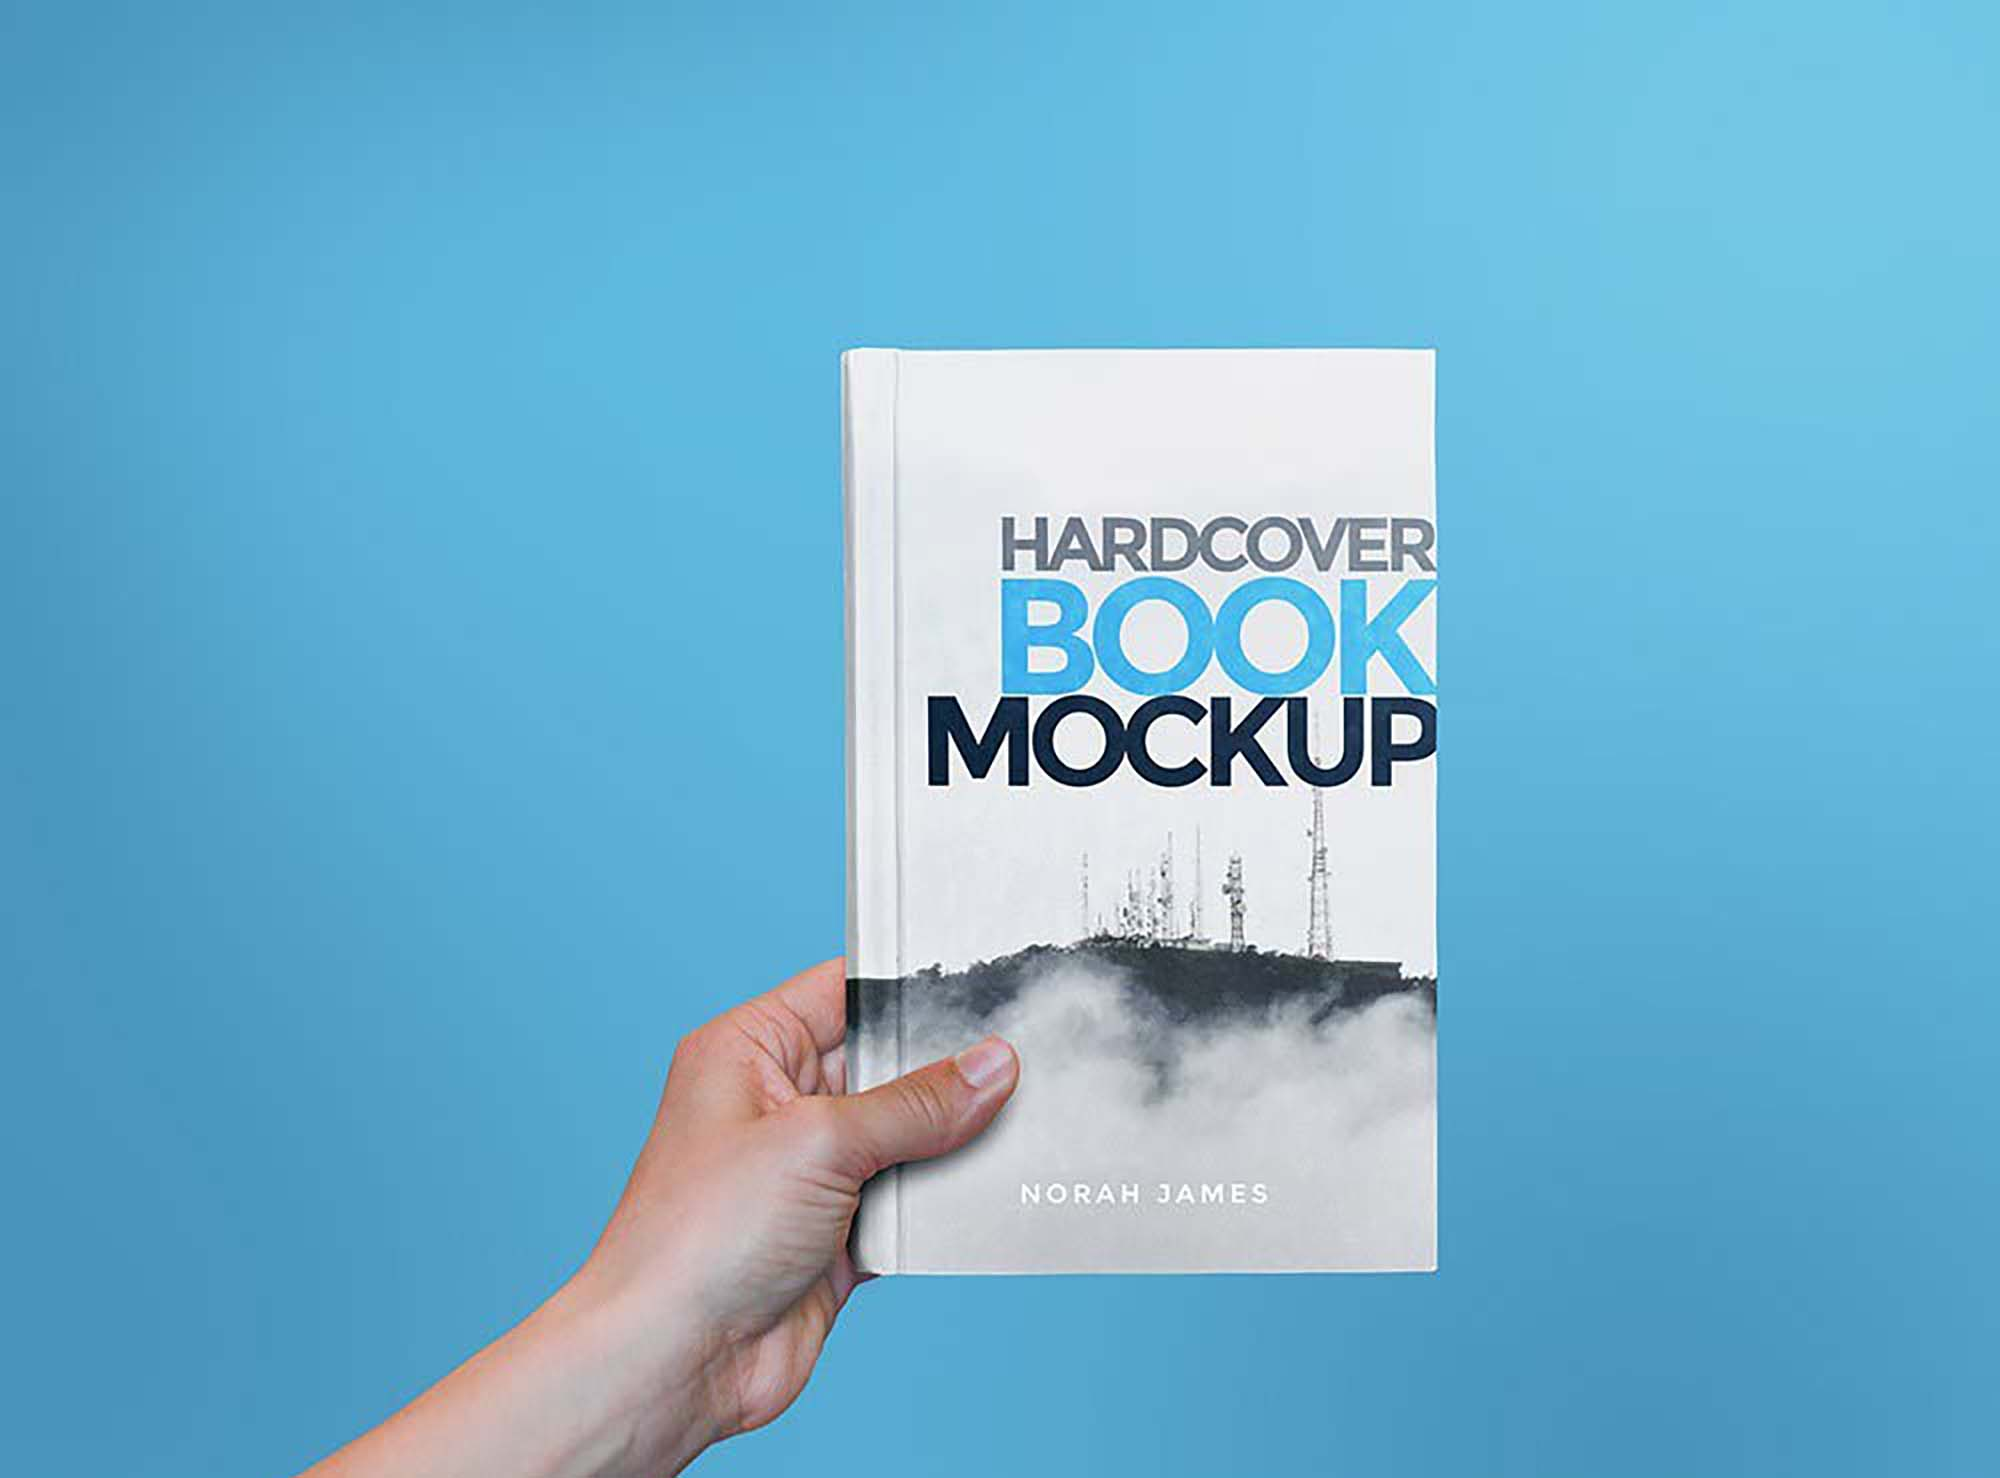 Hardcover Book in Hand Mockup 2